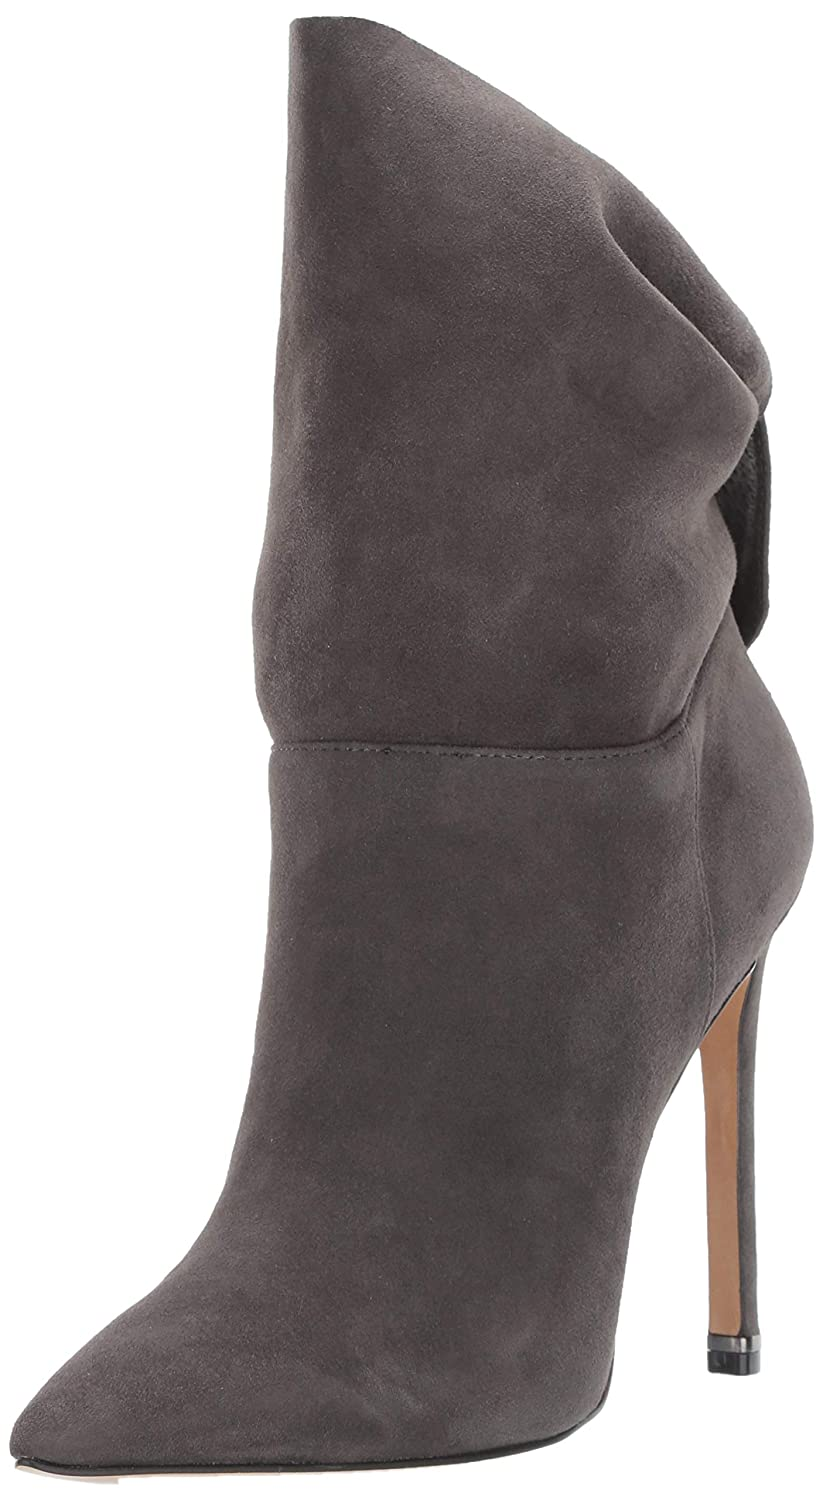 c4ade4676b36b Kenneth Cole New York Women's Riley 110 Mm Heel Slouch Bootie Ankle Boot